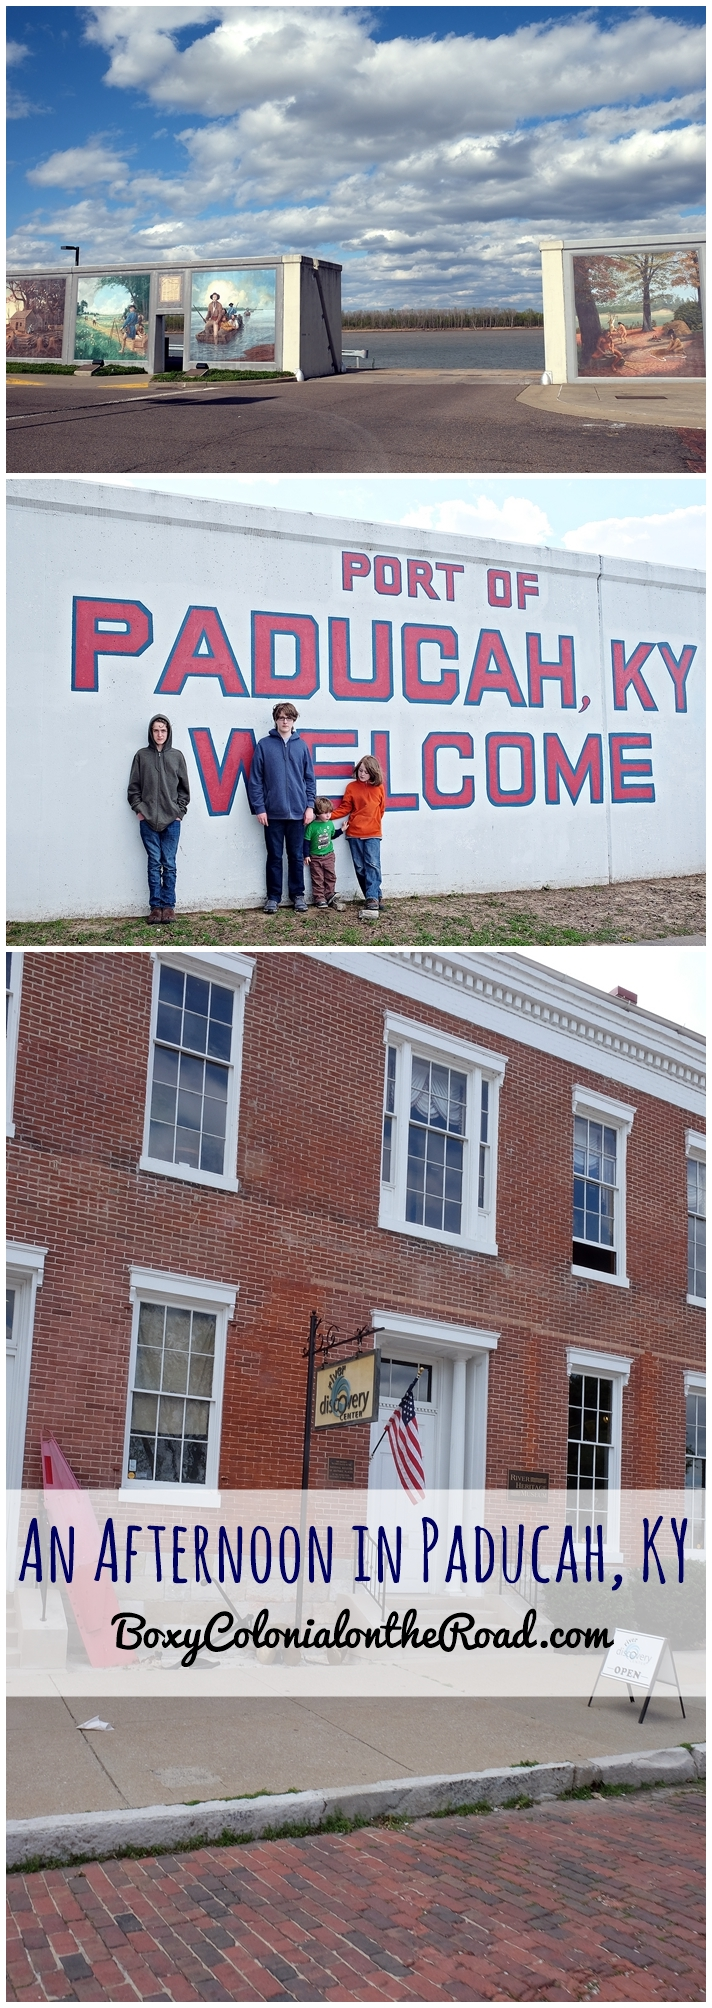 Afternoon in Paducah, KY with kids: River Discovery Museum, riverfront, downtown, floodwall murals